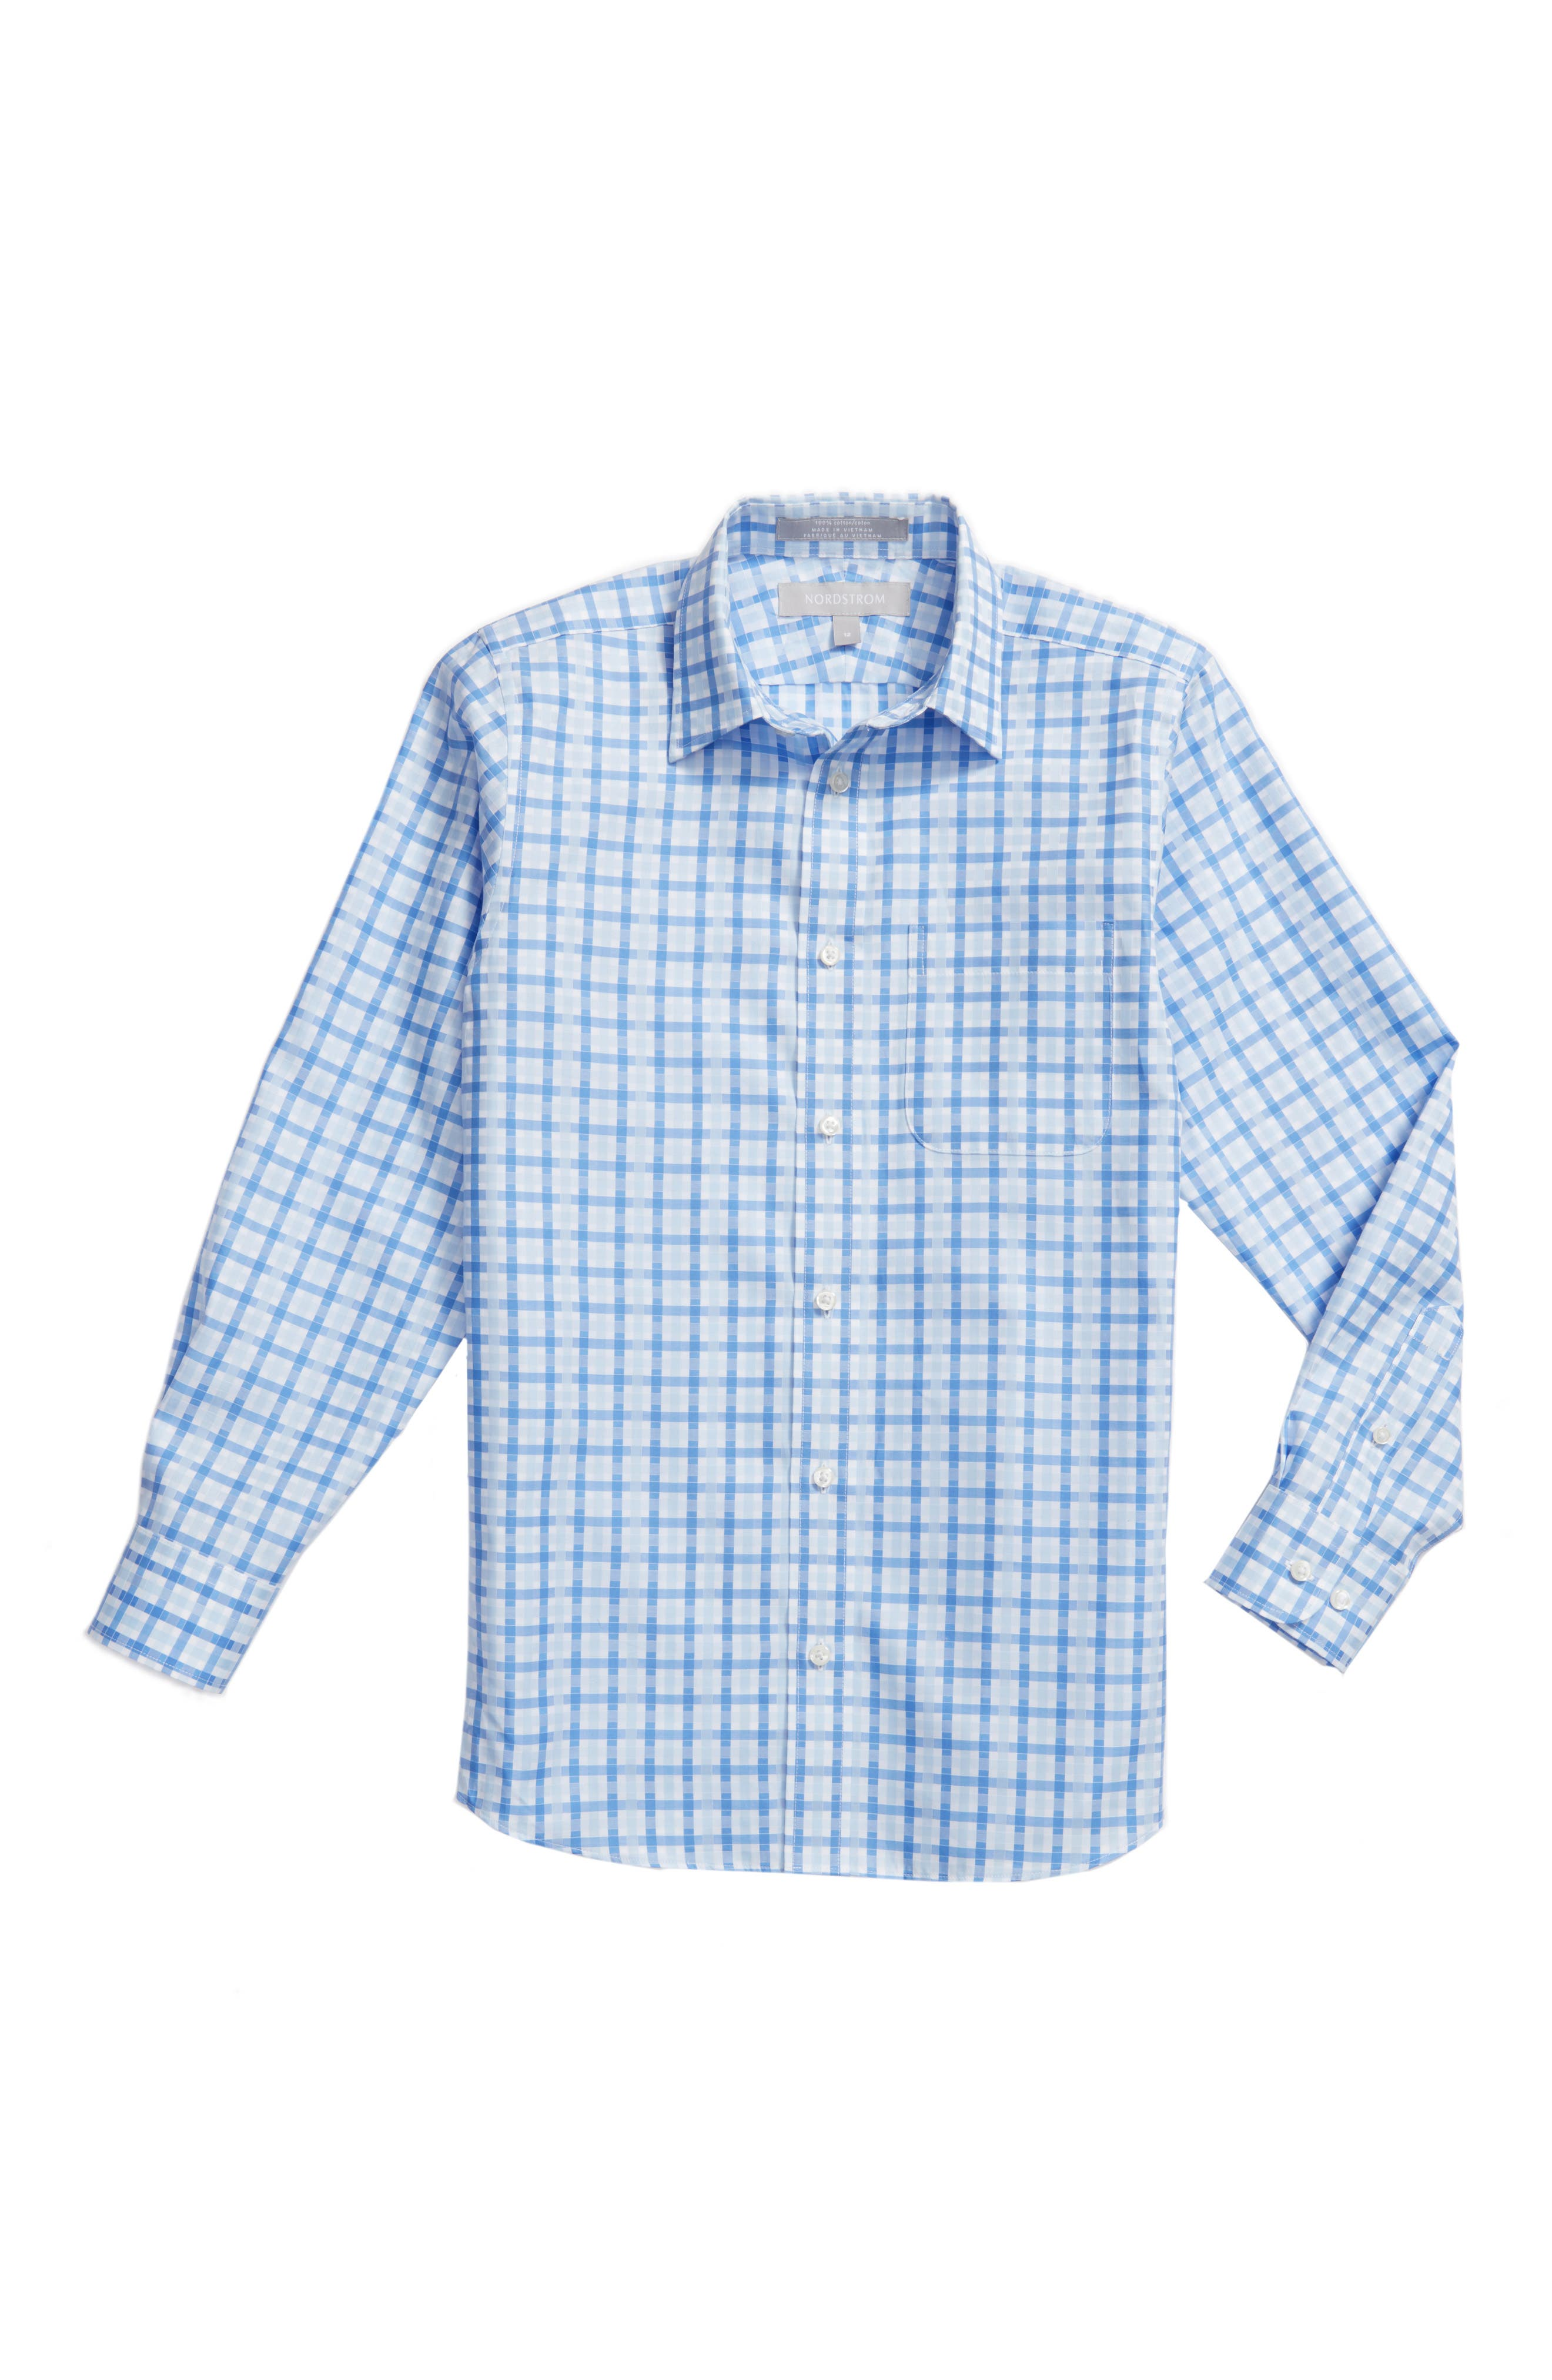 Nordstrom Kids Blue Haze Plaid Dress Shirt (Big Boys)